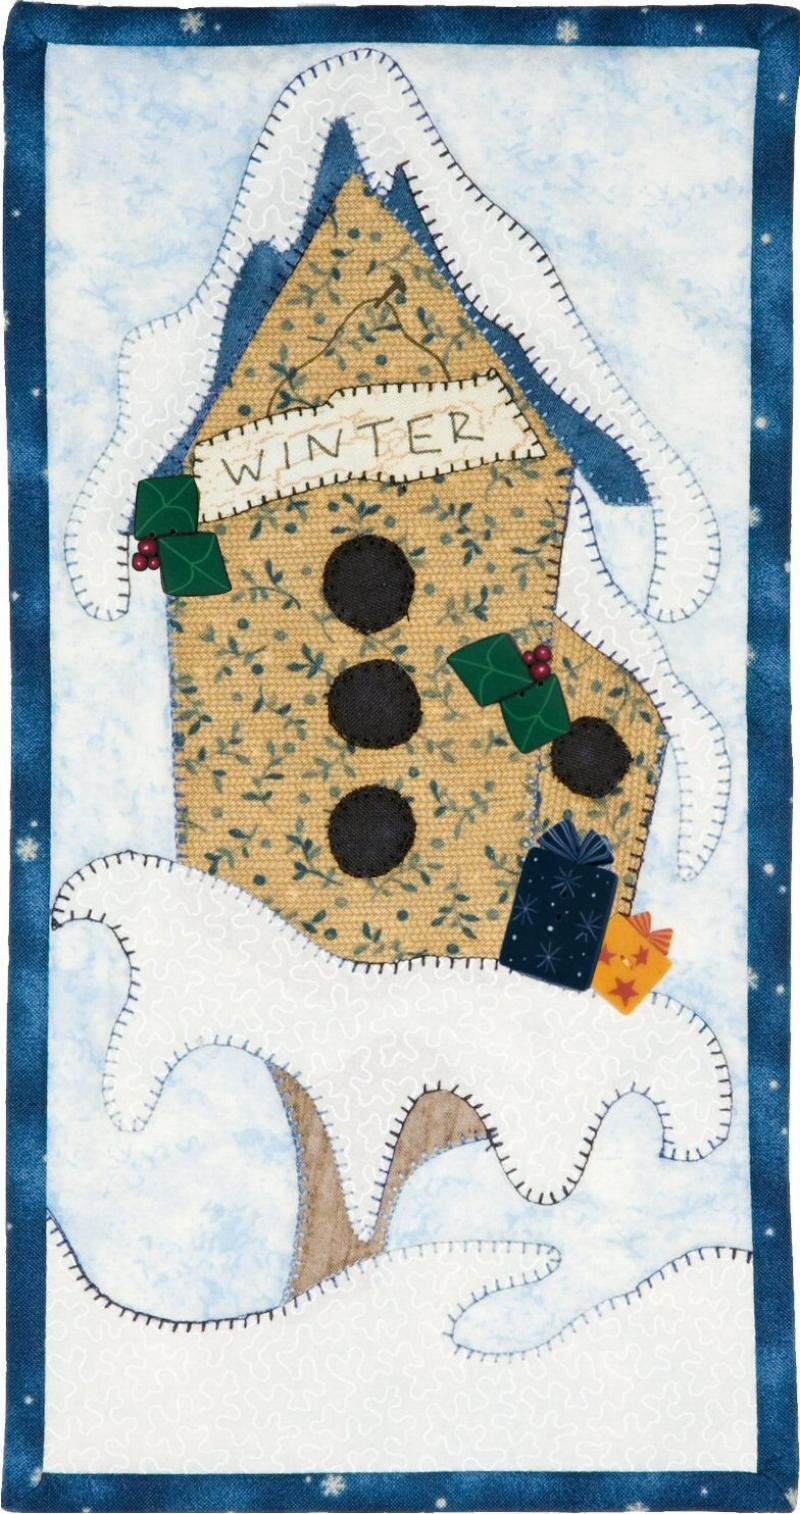 PATCH ABILITIES  WINTER WHIMSY BIRDHOUSE BUTTONS (MM14)